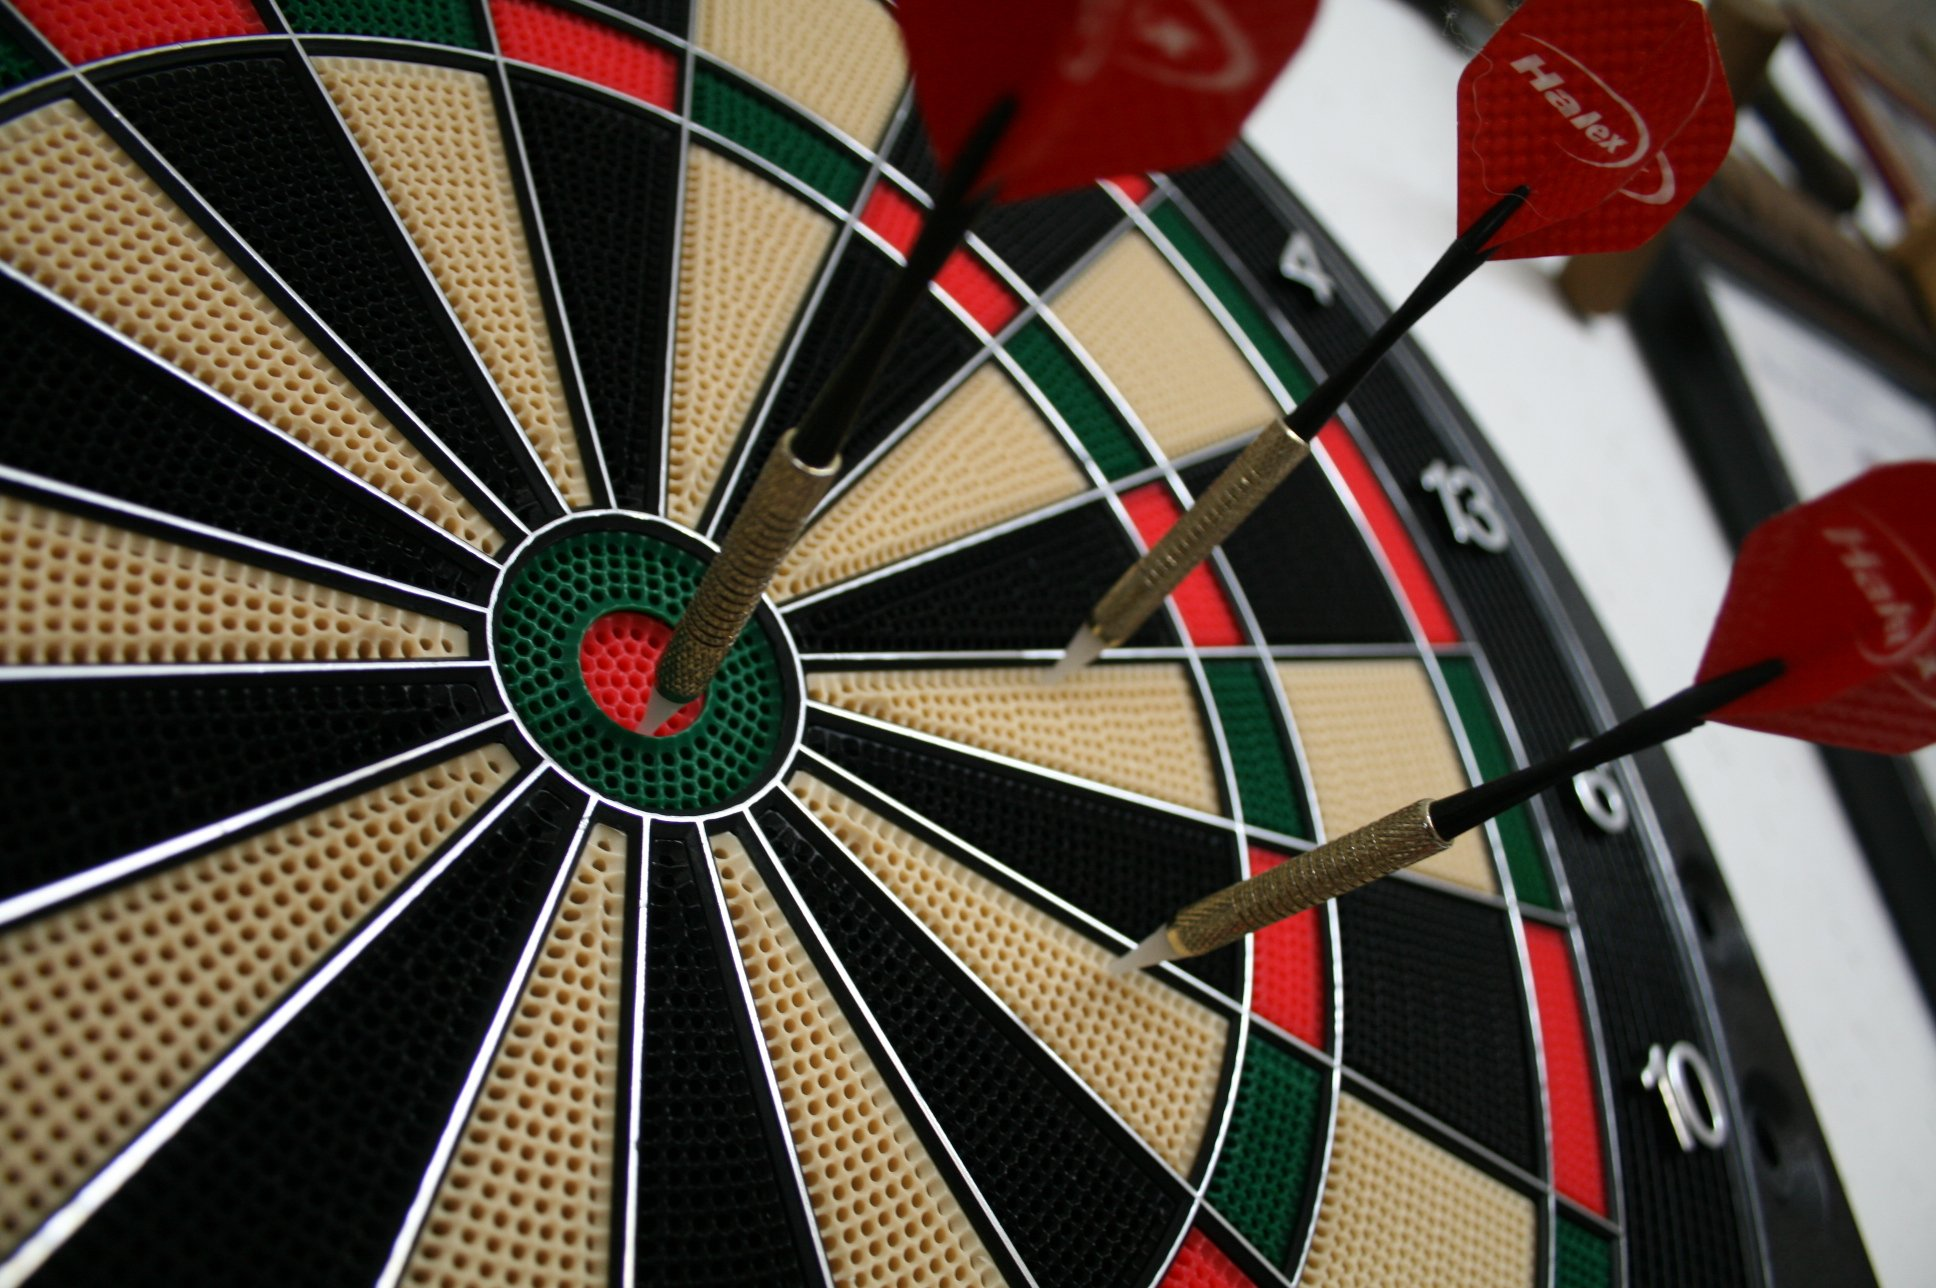 darts board game widescreen desktop wallpaper 1298